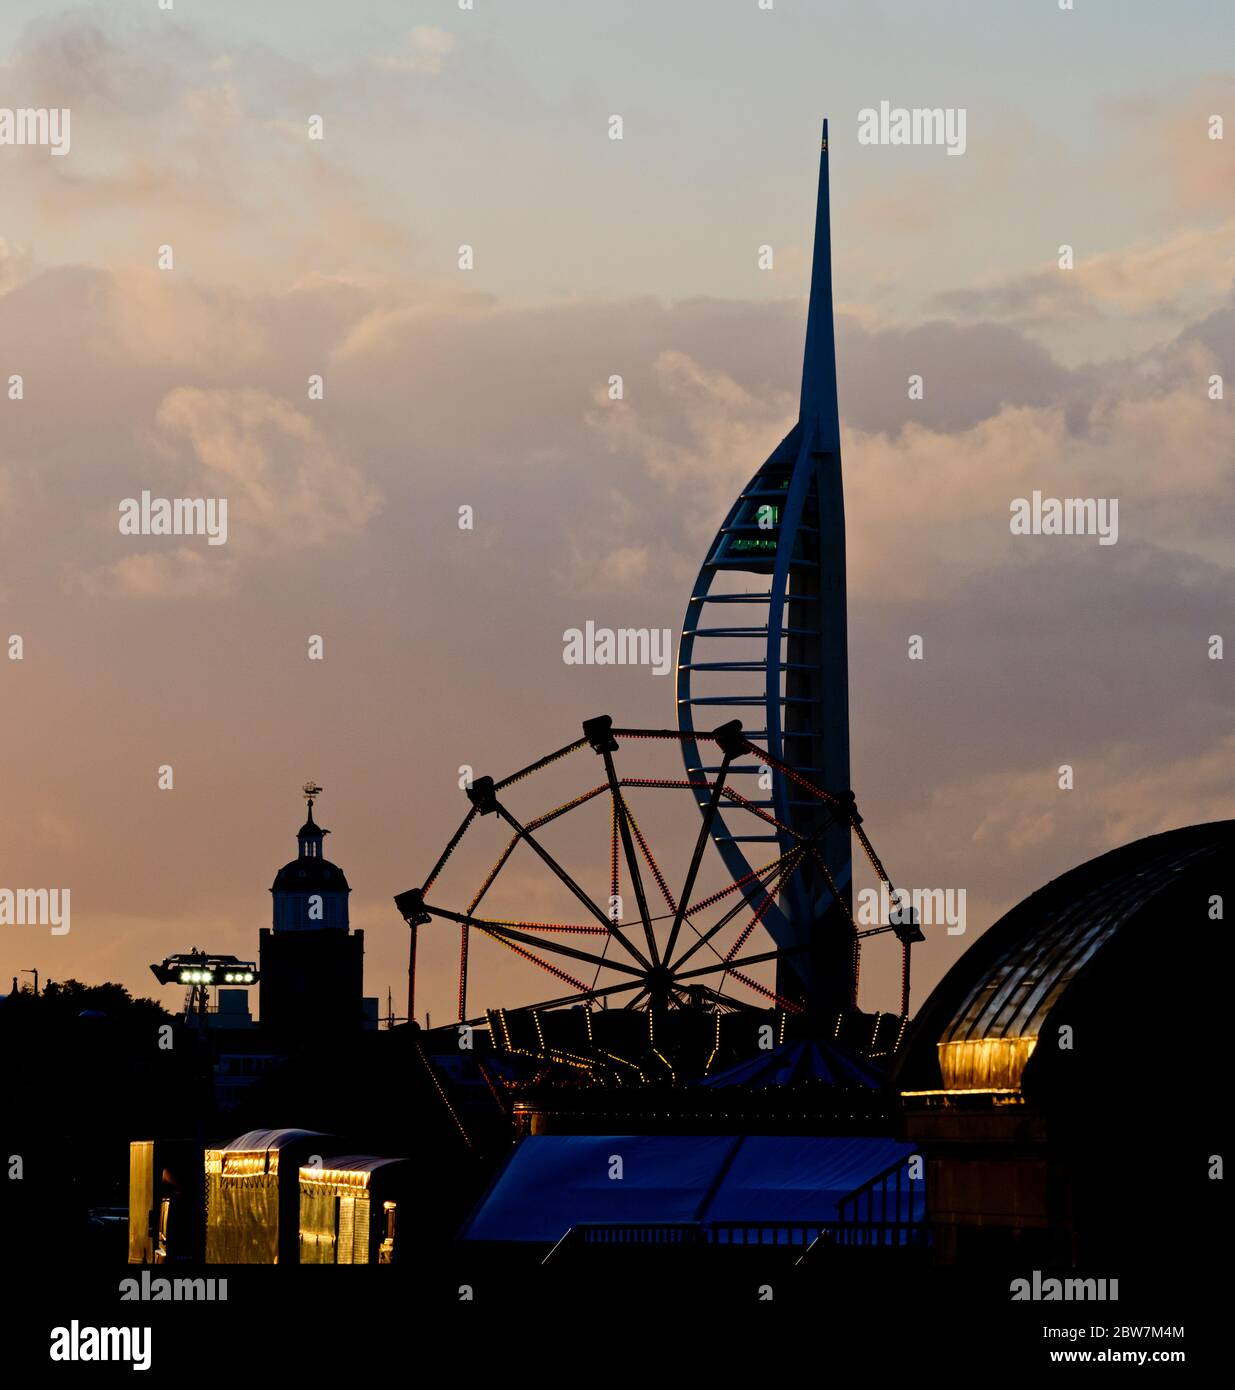 View at sunset of Portsmouth Cathedral, the Spinnaker Tower and a fairground on Southsea Common, taken from the Royal Naval War Memorial Stock Photo